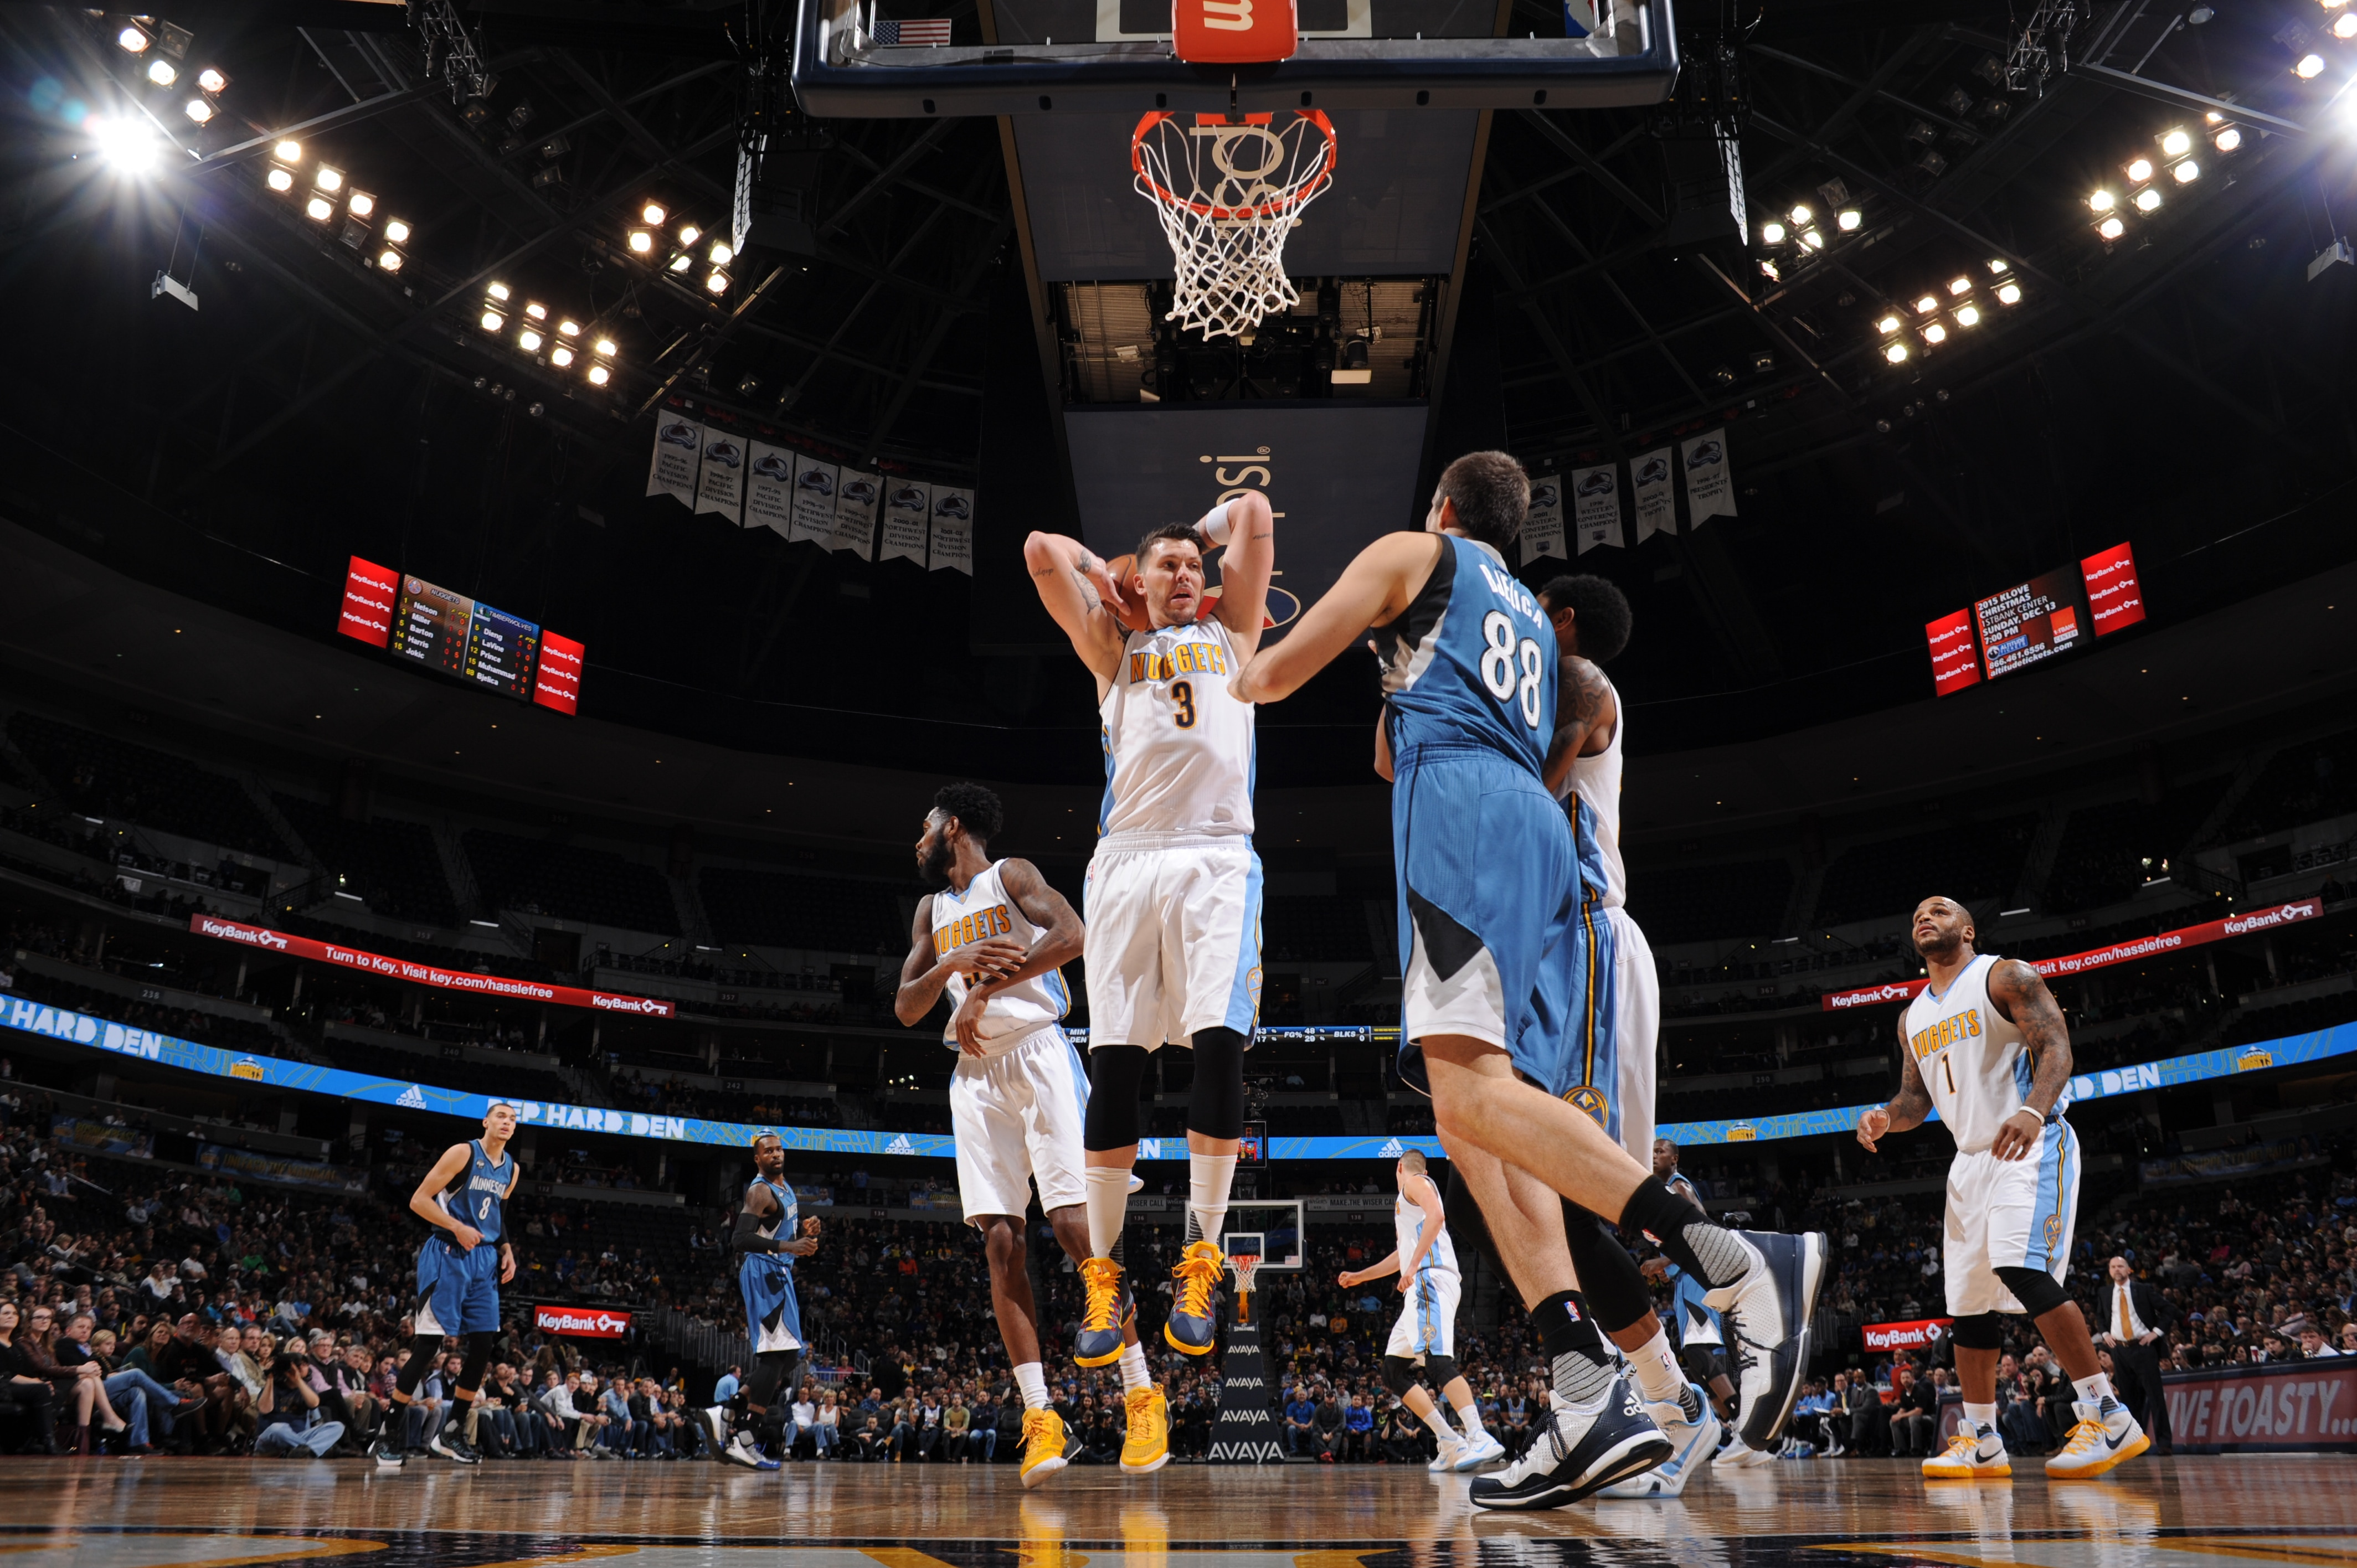 Klove Christmas Player.Photo Gallery Wolves At Nuggets Minnesota Timberwolves